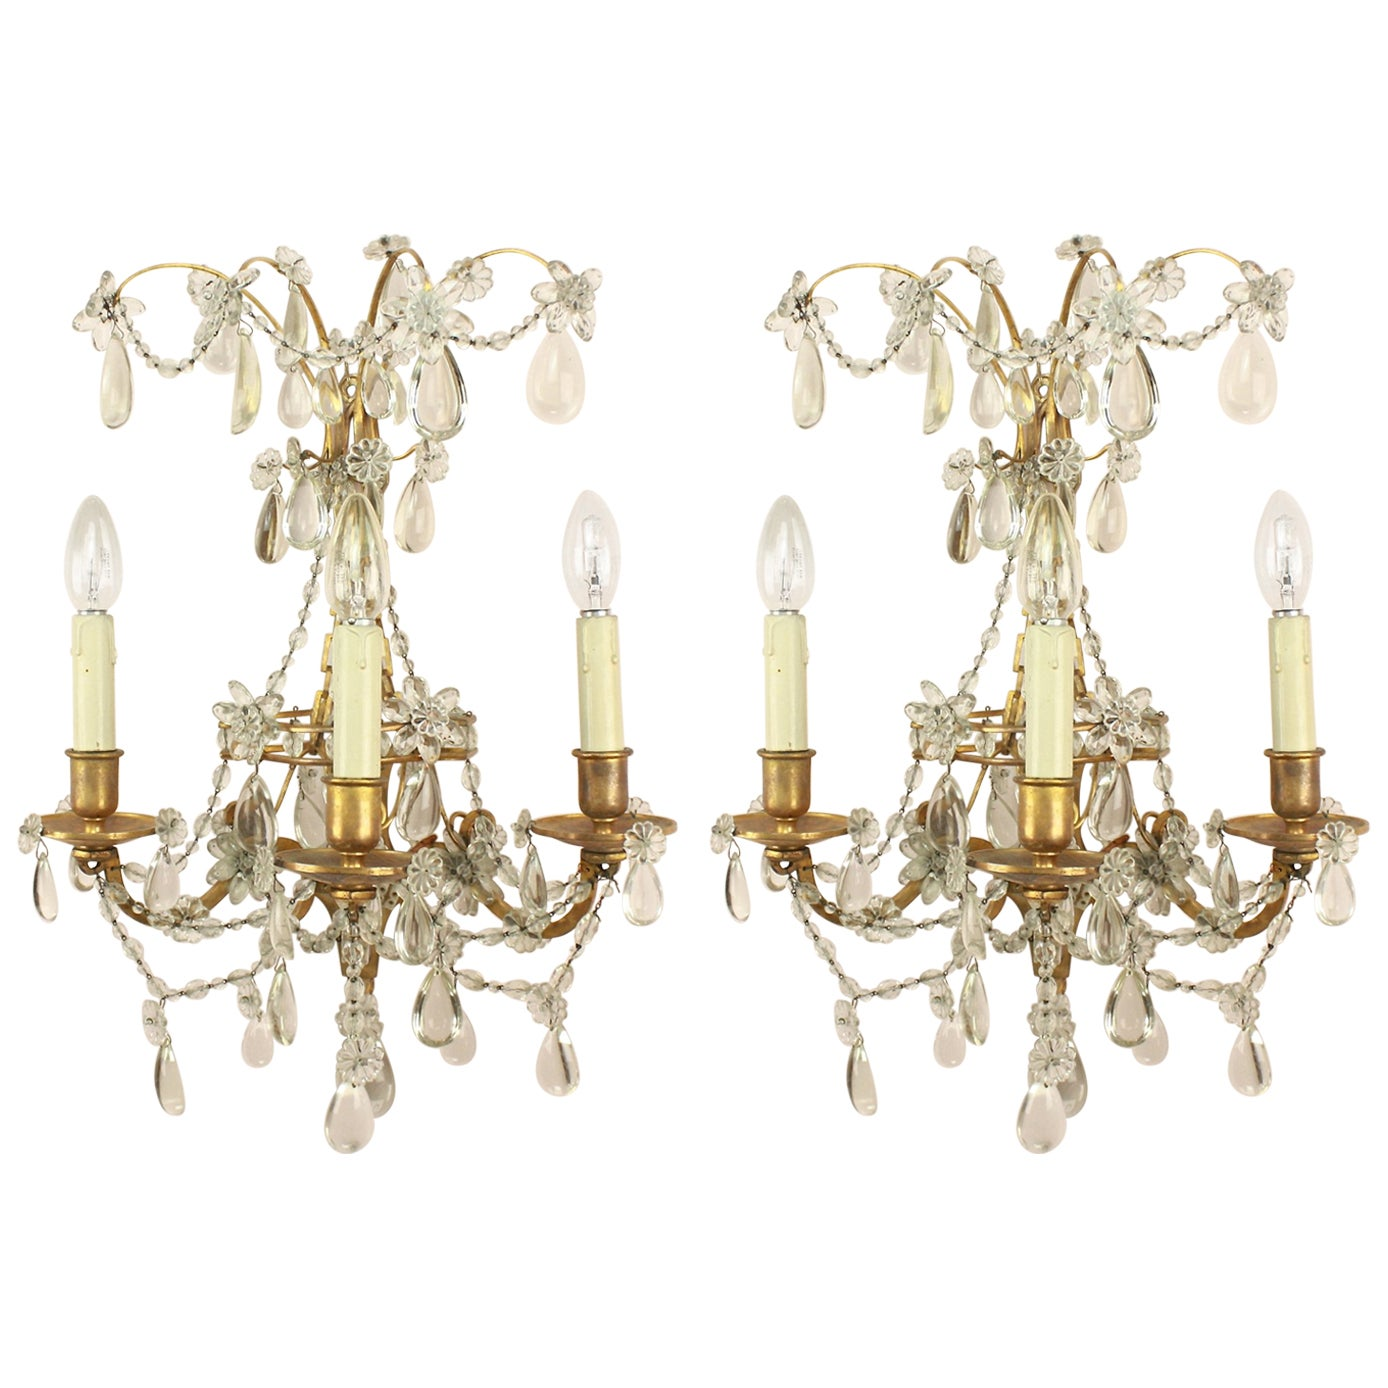 Pair of Regence Style Maison Bagues Three Branch Wall Sconce, circa 1900